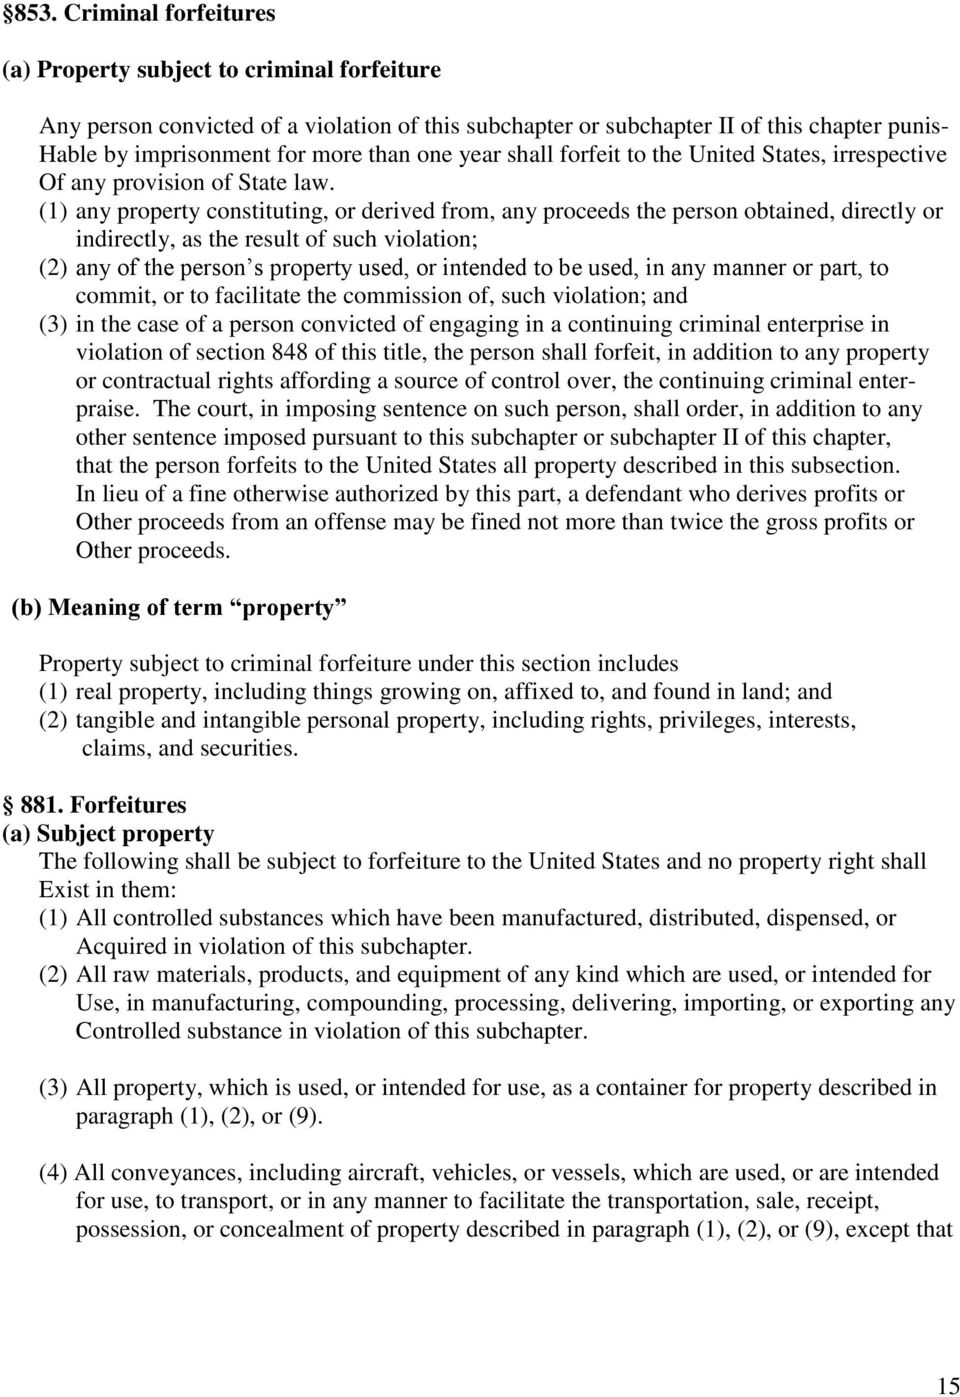 (1) any property constituting, or derived from, any proceeds the person obtained, directly or indirectly, as the result of such violation; (2) any of the person s property used, or intended to be